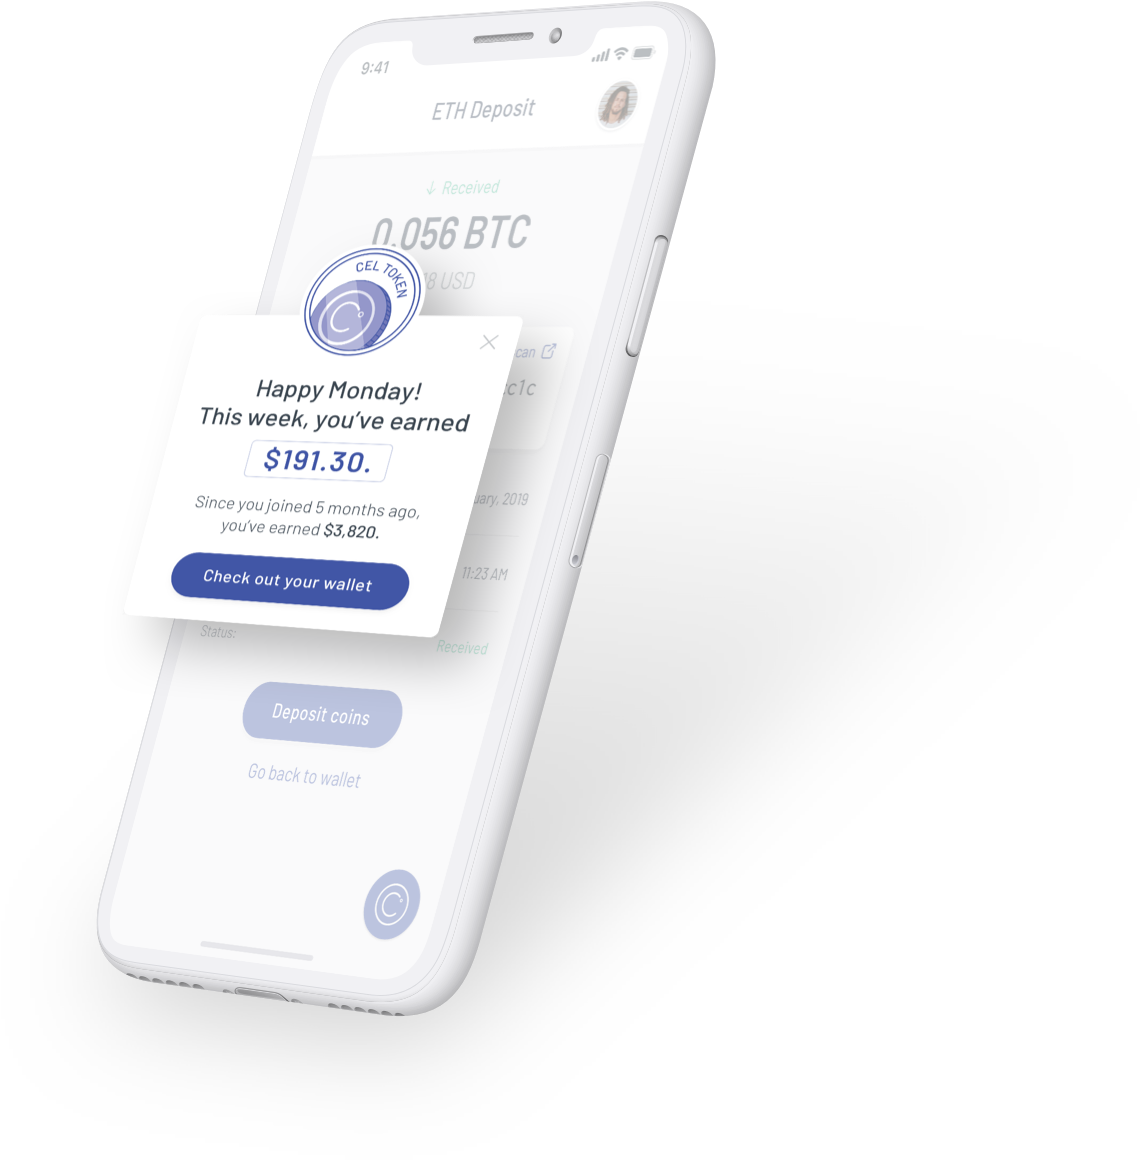 Earn, borrow, pay on the blockchain Celsius Network earn borrow pay or buy crypto assets and earn interest on the investment. Sign up free with your Celcius app.